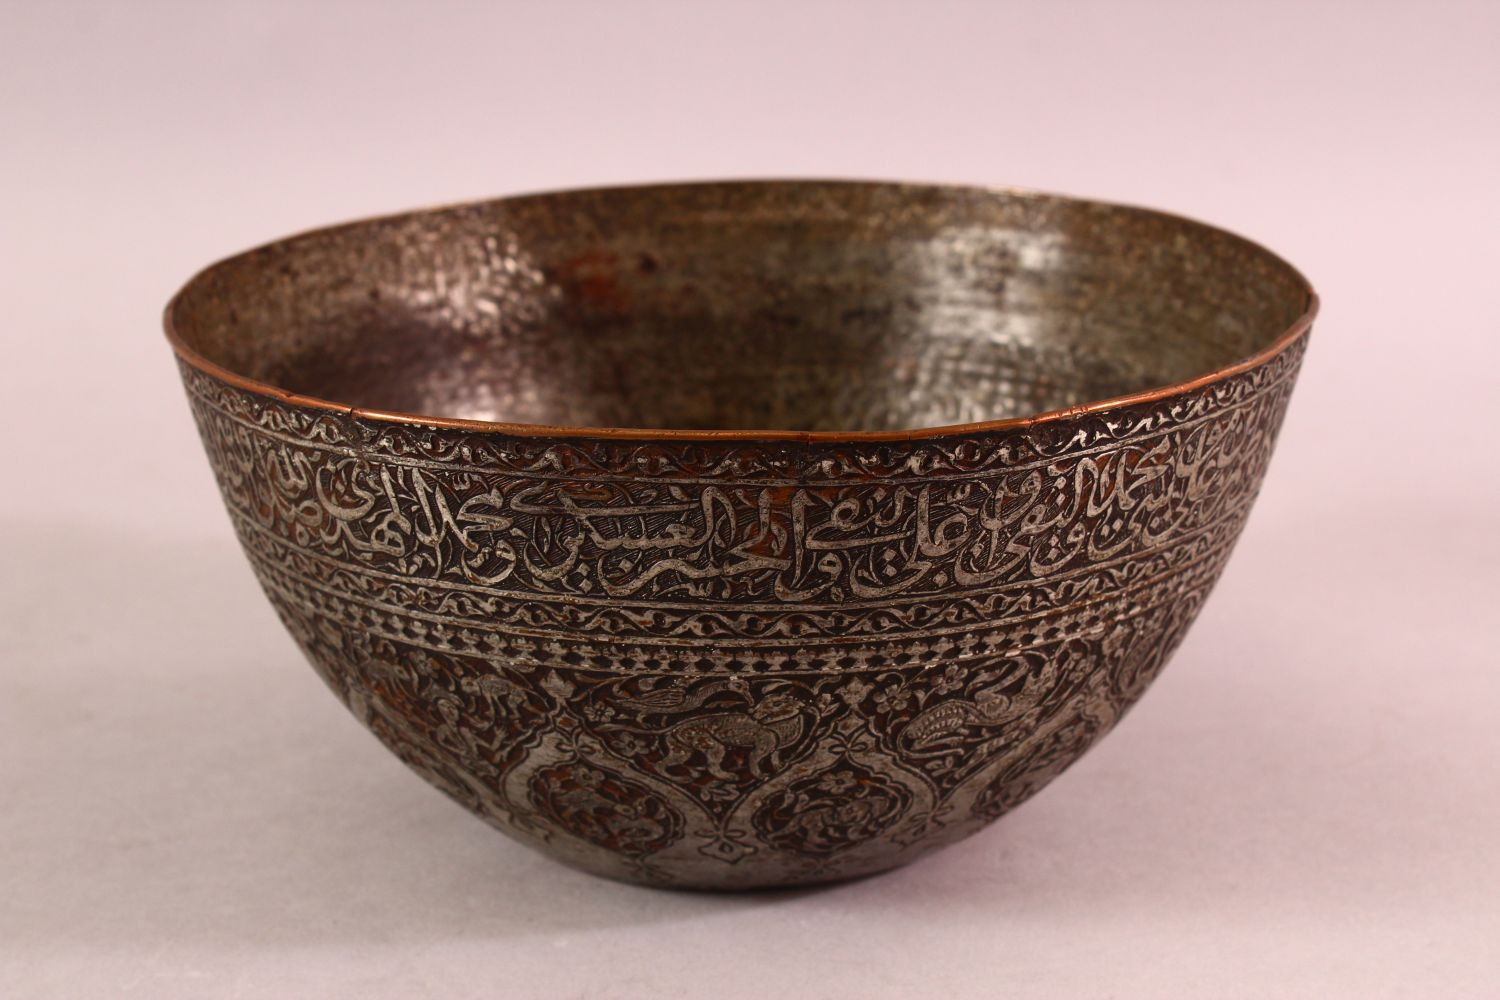 A GOOD ZANDI TINNED COPPER ENGRAVED CALLIGRAPHIC BOWL, with bands of calligraphy, 19cm diameter, - Image 2 of 6